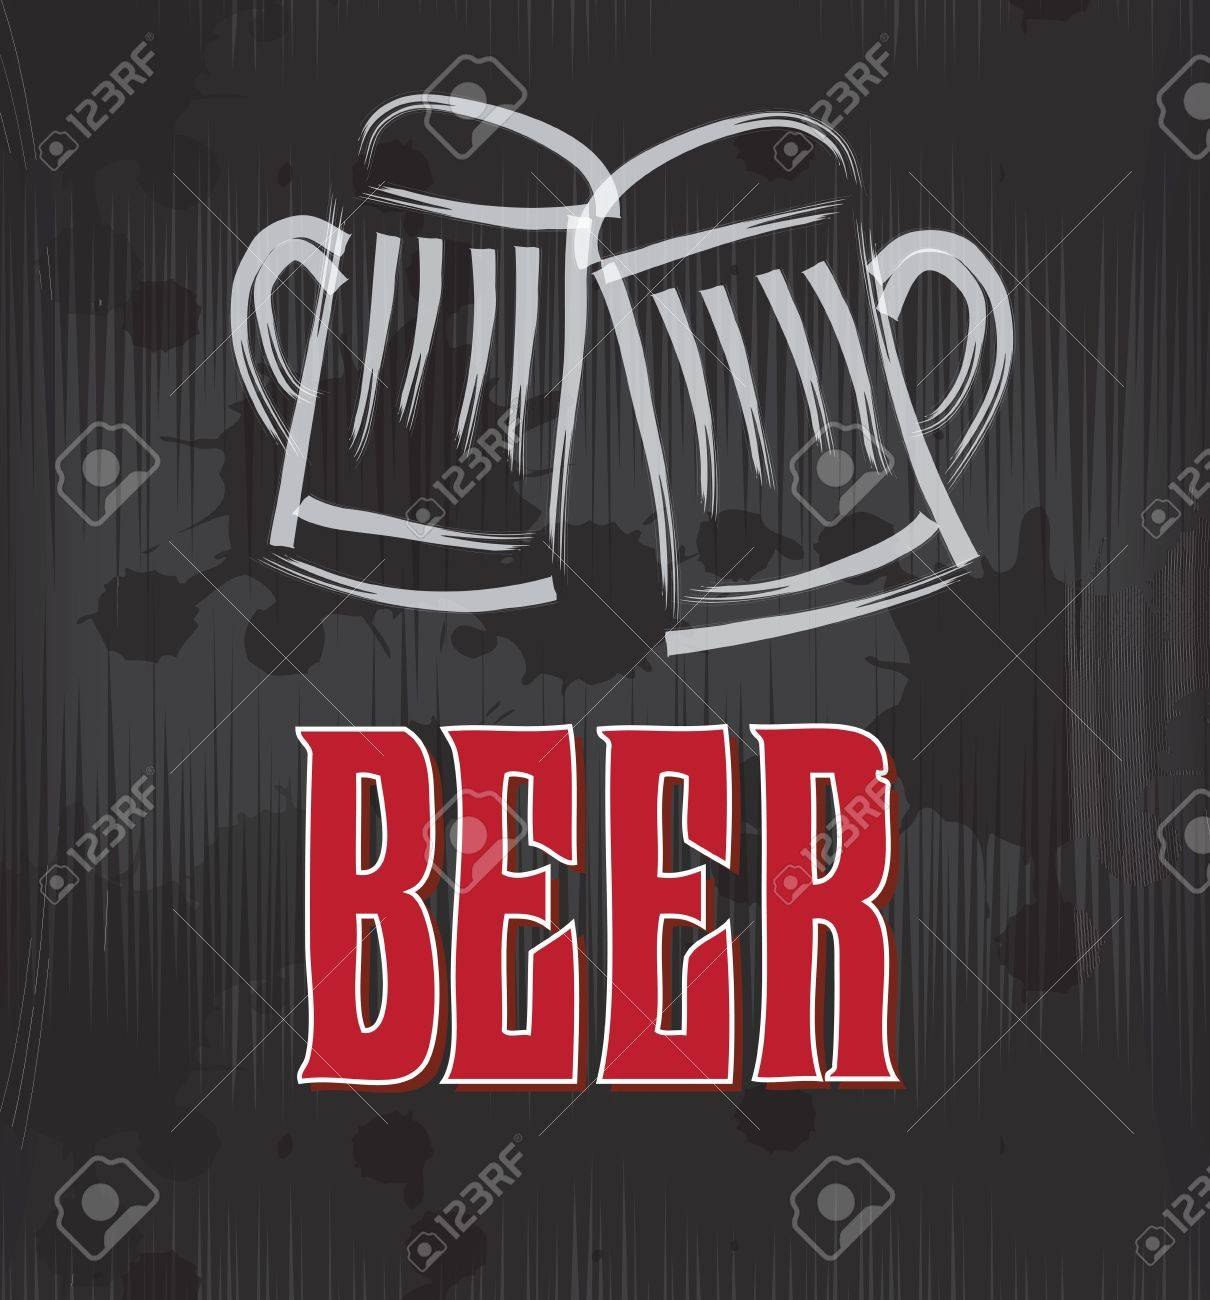 Beer label over grunge and gray background vector illustration Stock Vector - 19179894